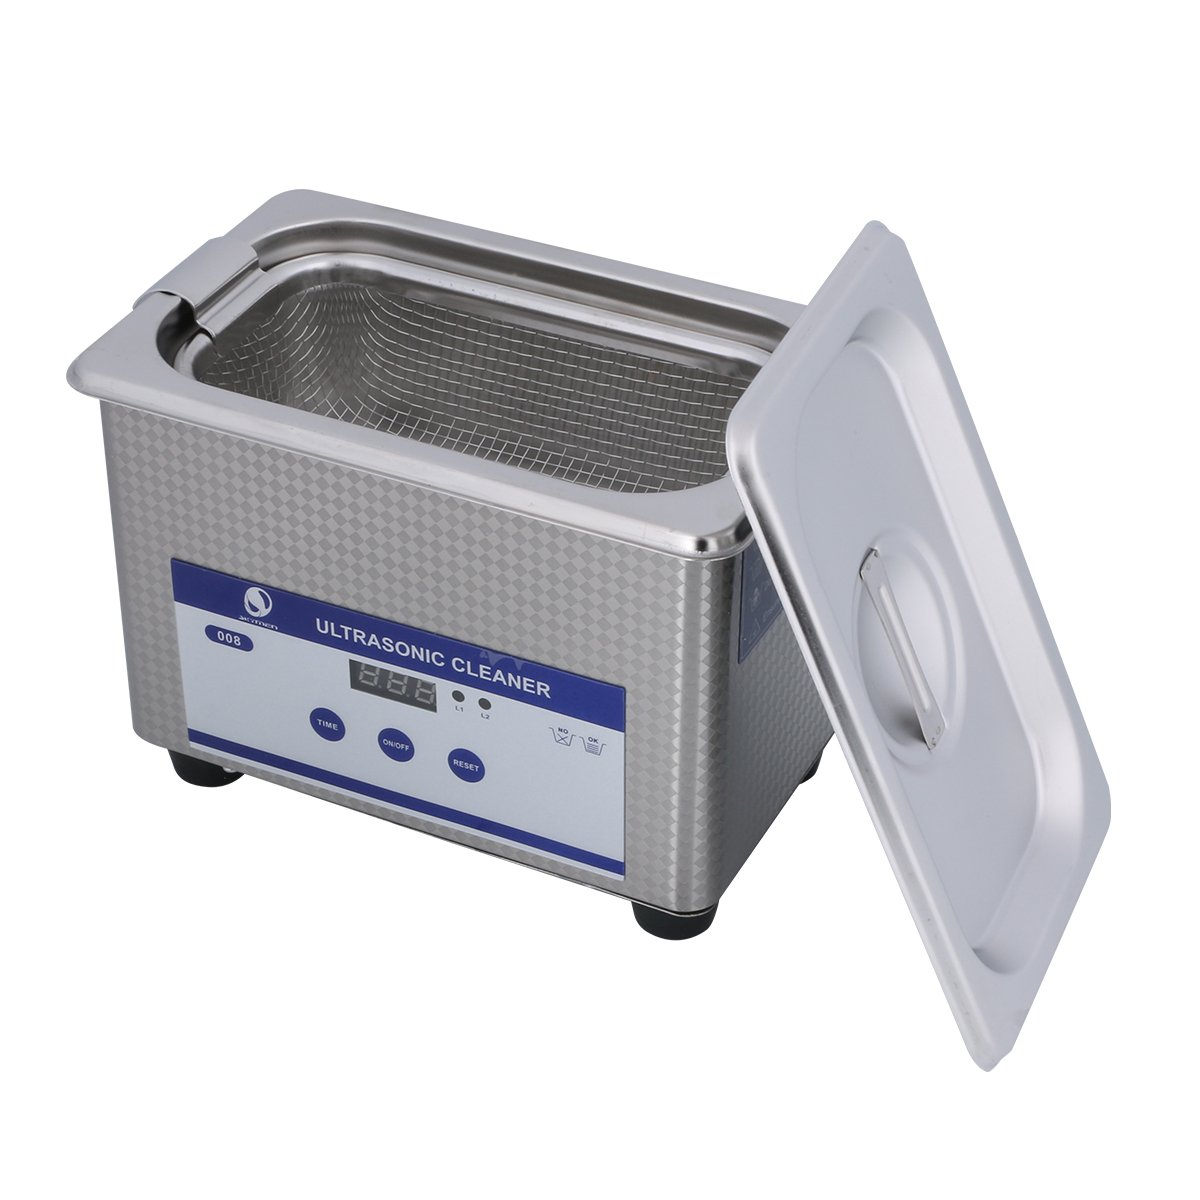 Ultrasonic Cleaners Digital Timer for Cleaning Jewelry and Eyeglass 100-120V/60HZ 35W 0.8L stainless steel by Skymen